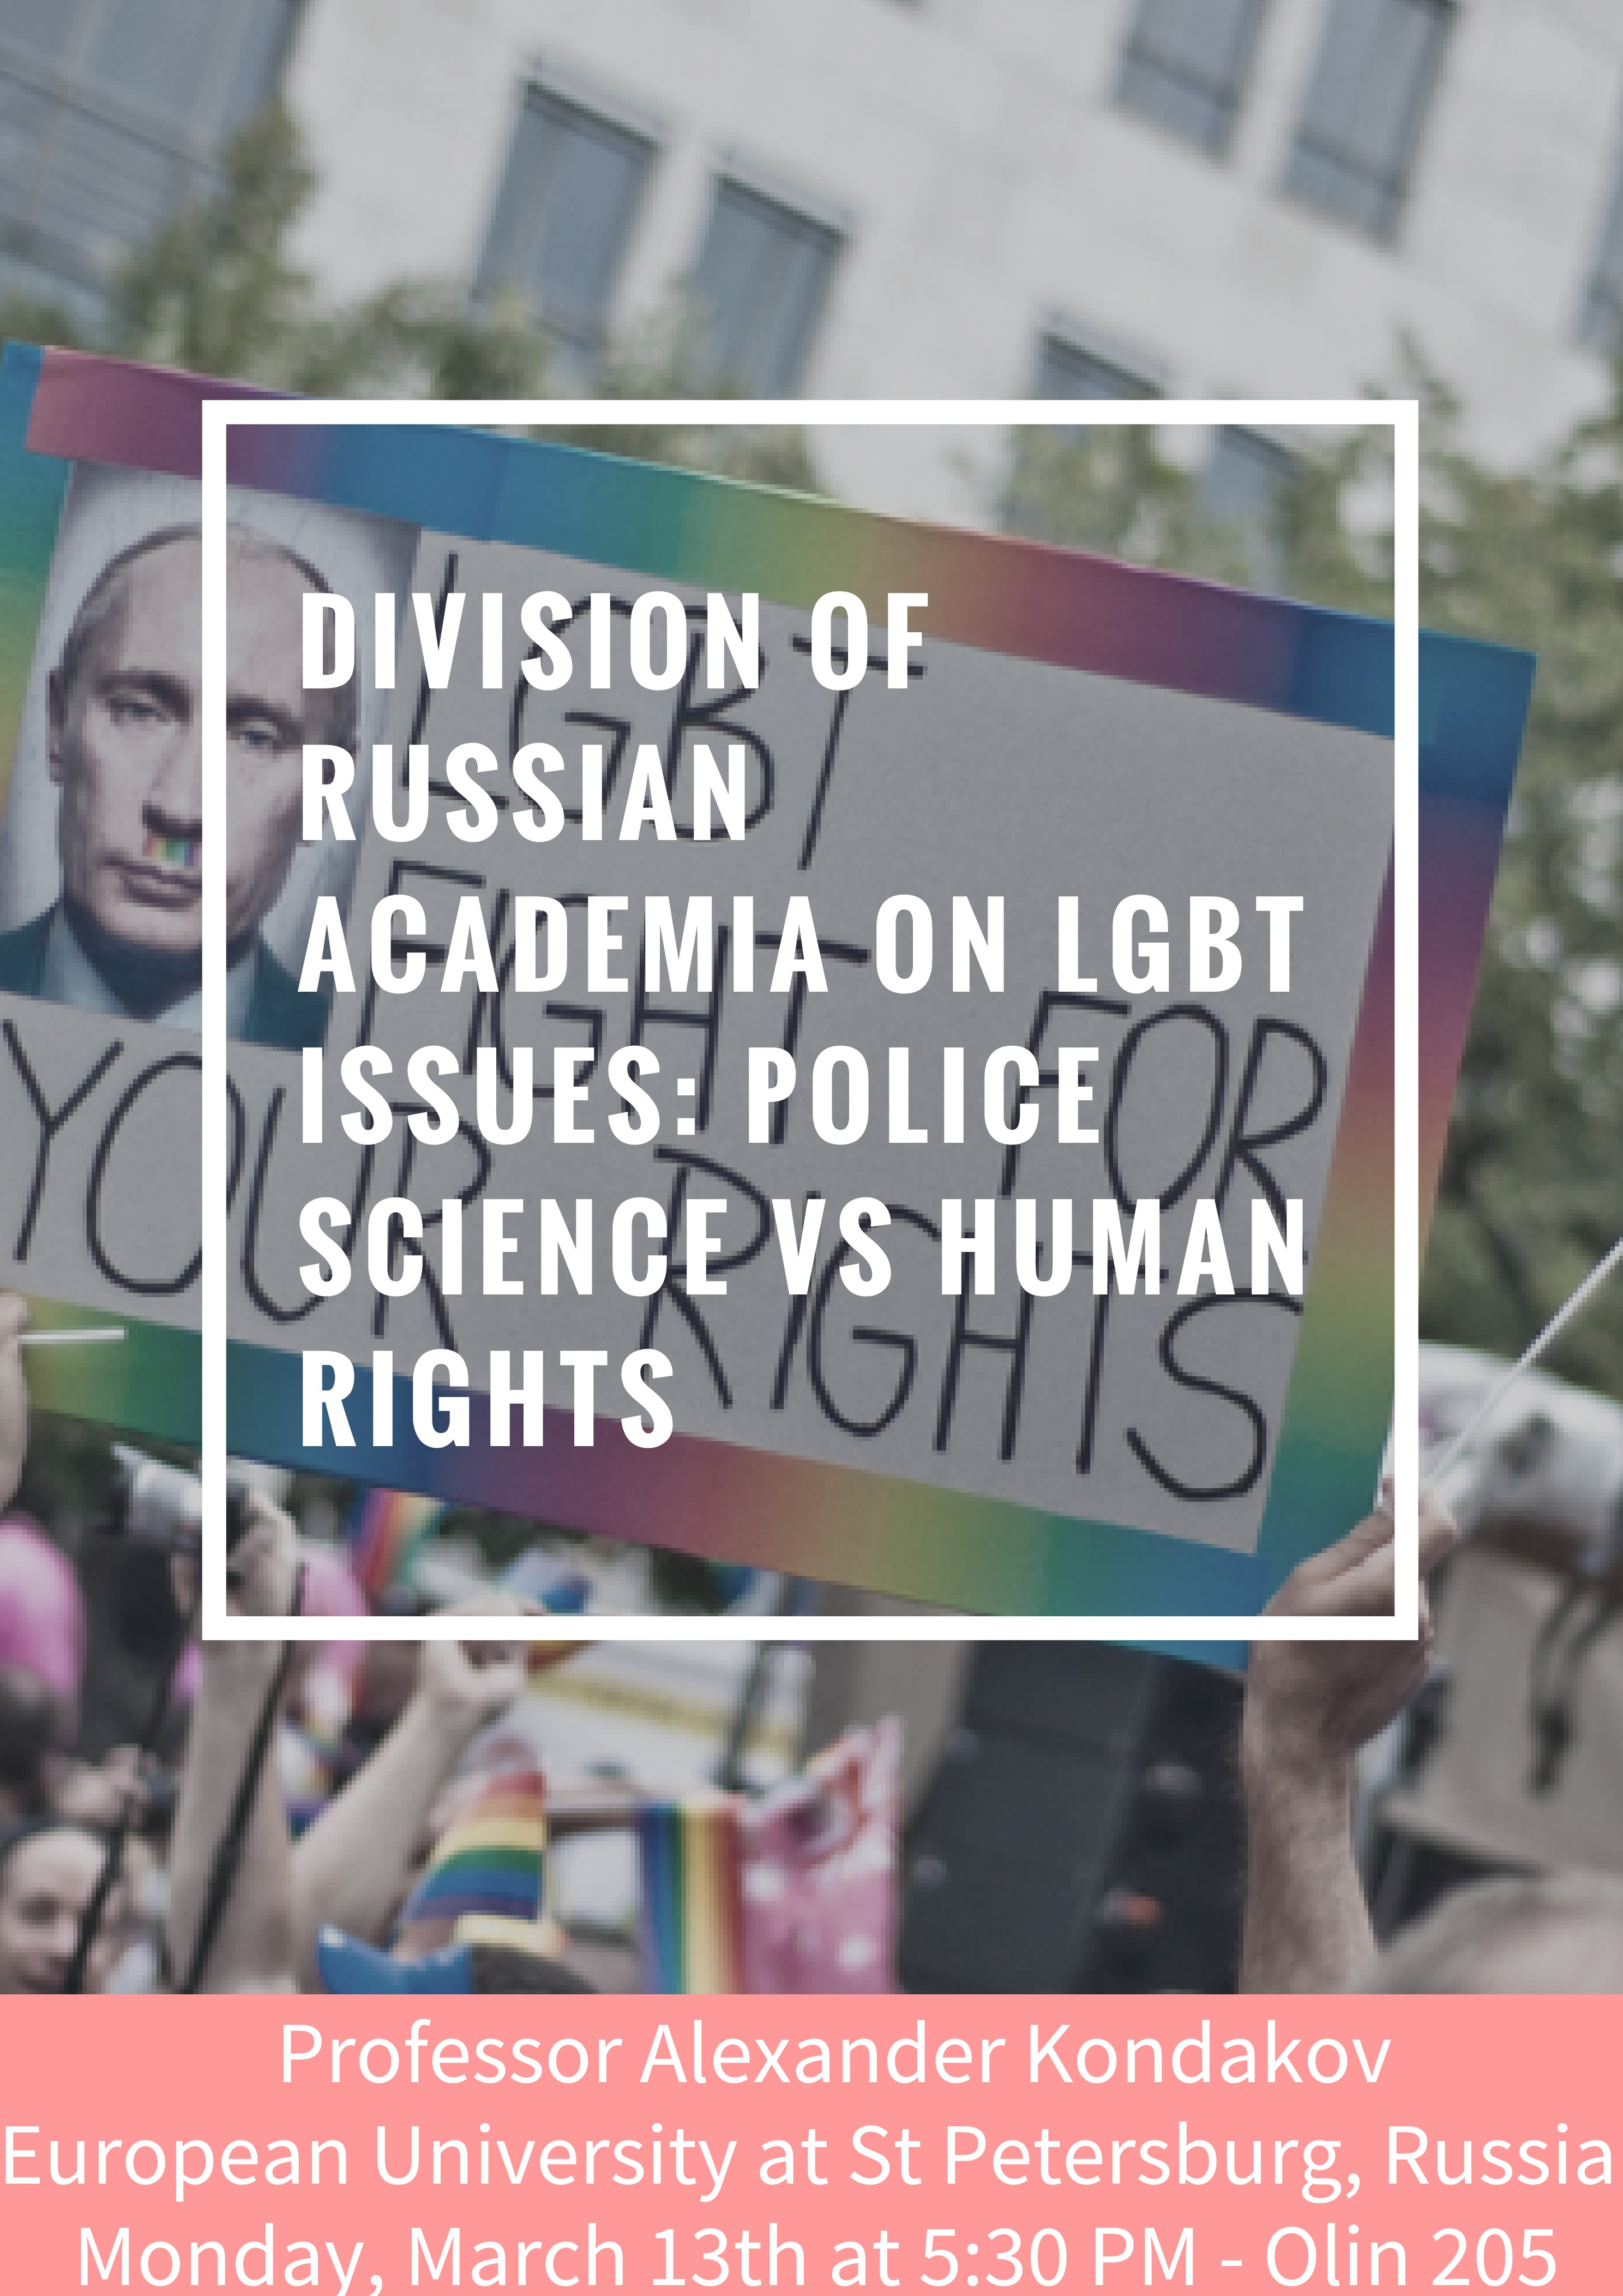 [Division of the Russian Academia on LGBT Issues: Police Science vs Human Rights ]